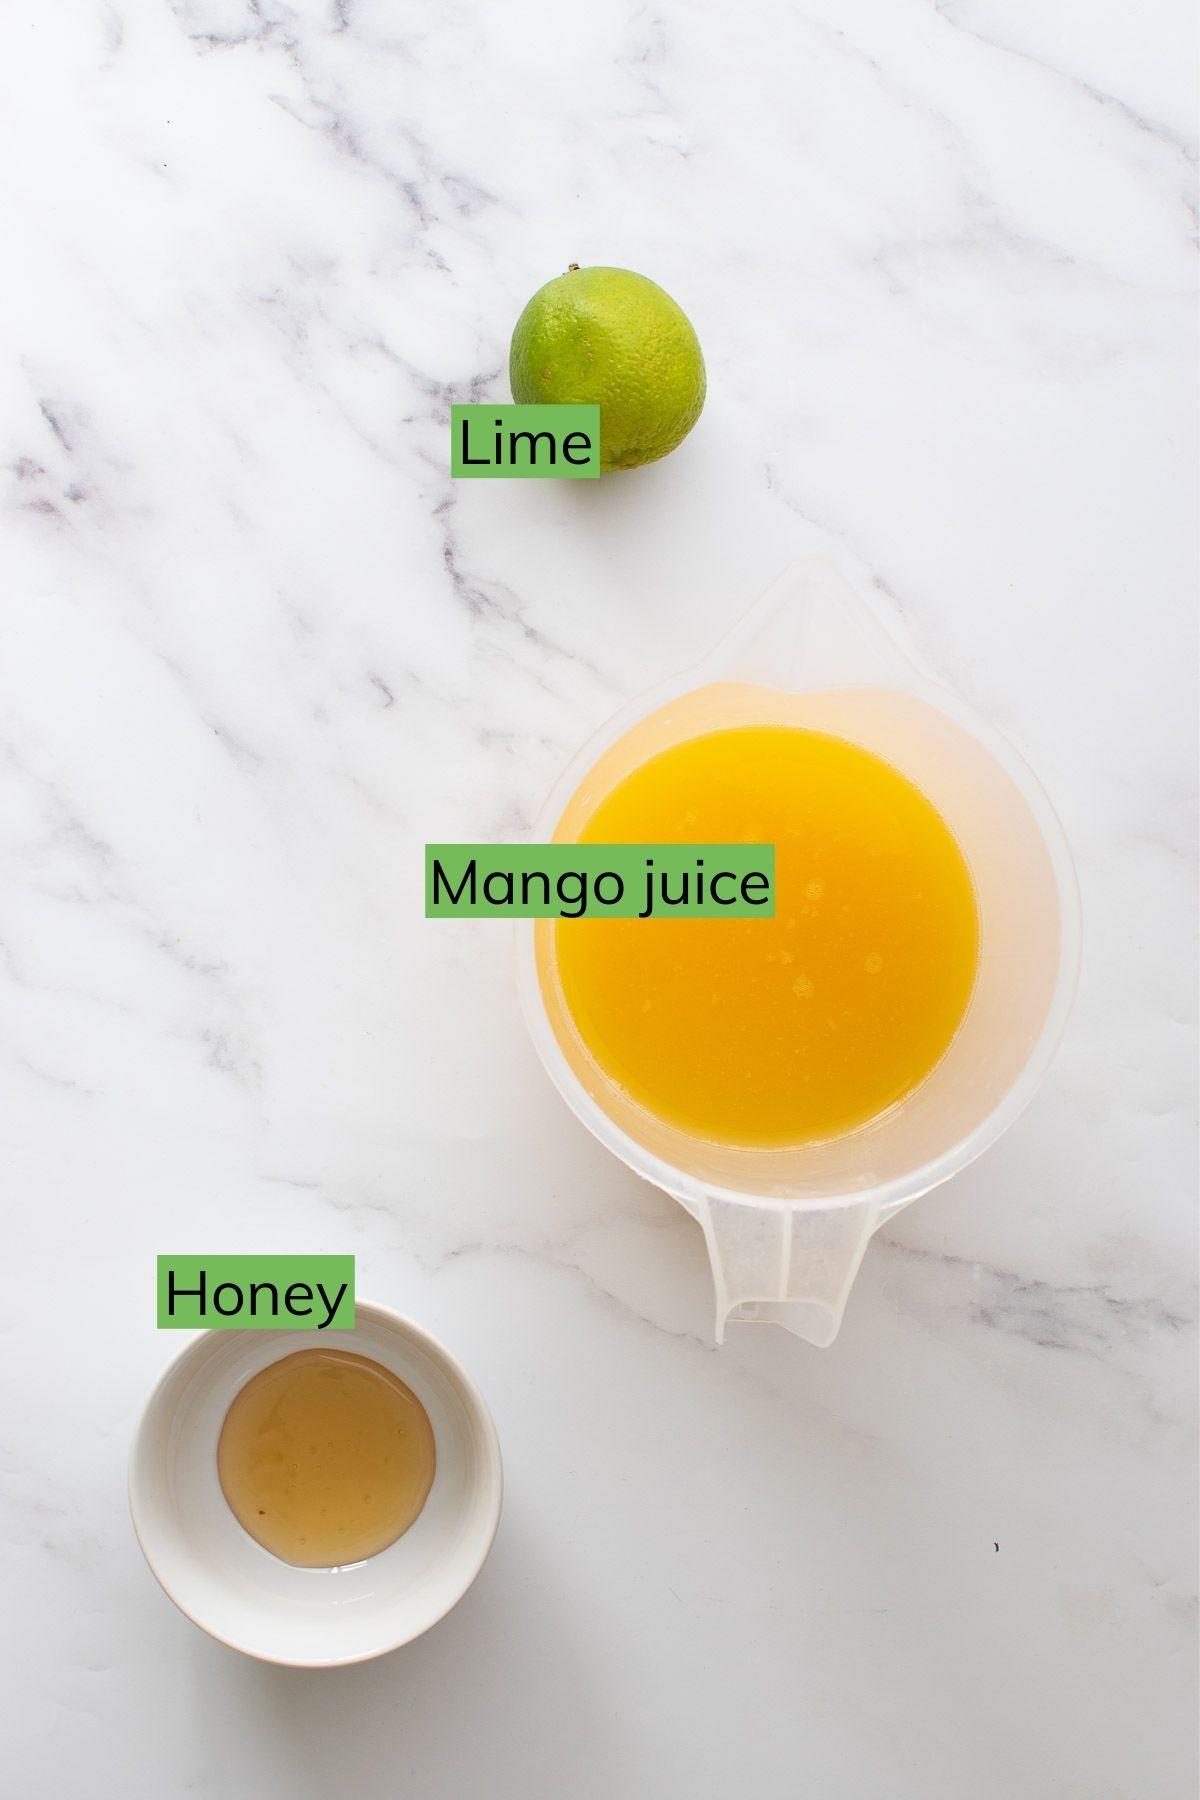 Mango juice, lime and honey.